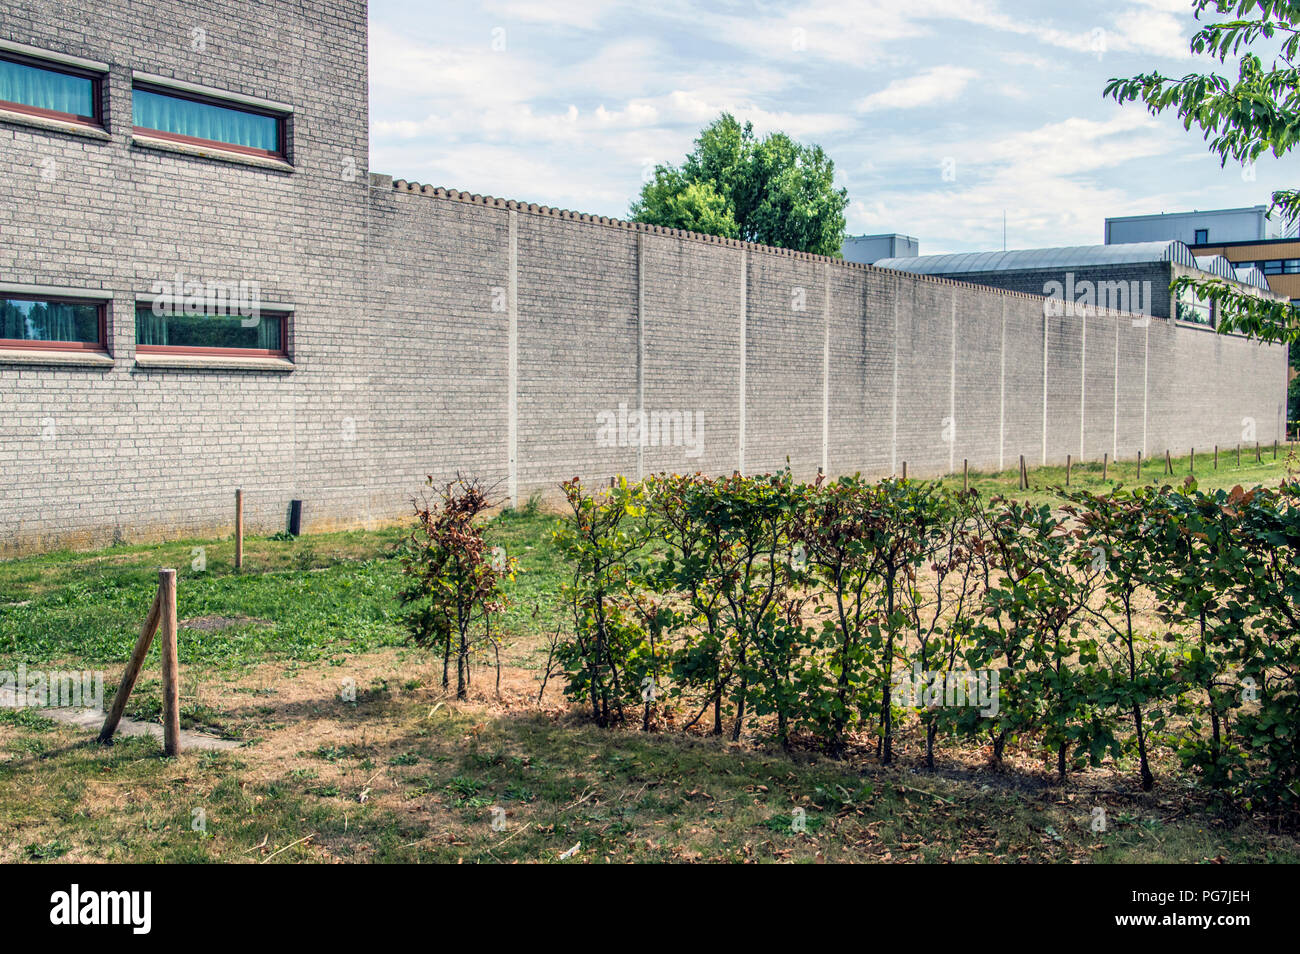 Wall At The Inforsa Forensic Psychiatric Clinic At Amsterdam The Netherlands 2018 - Stock Image